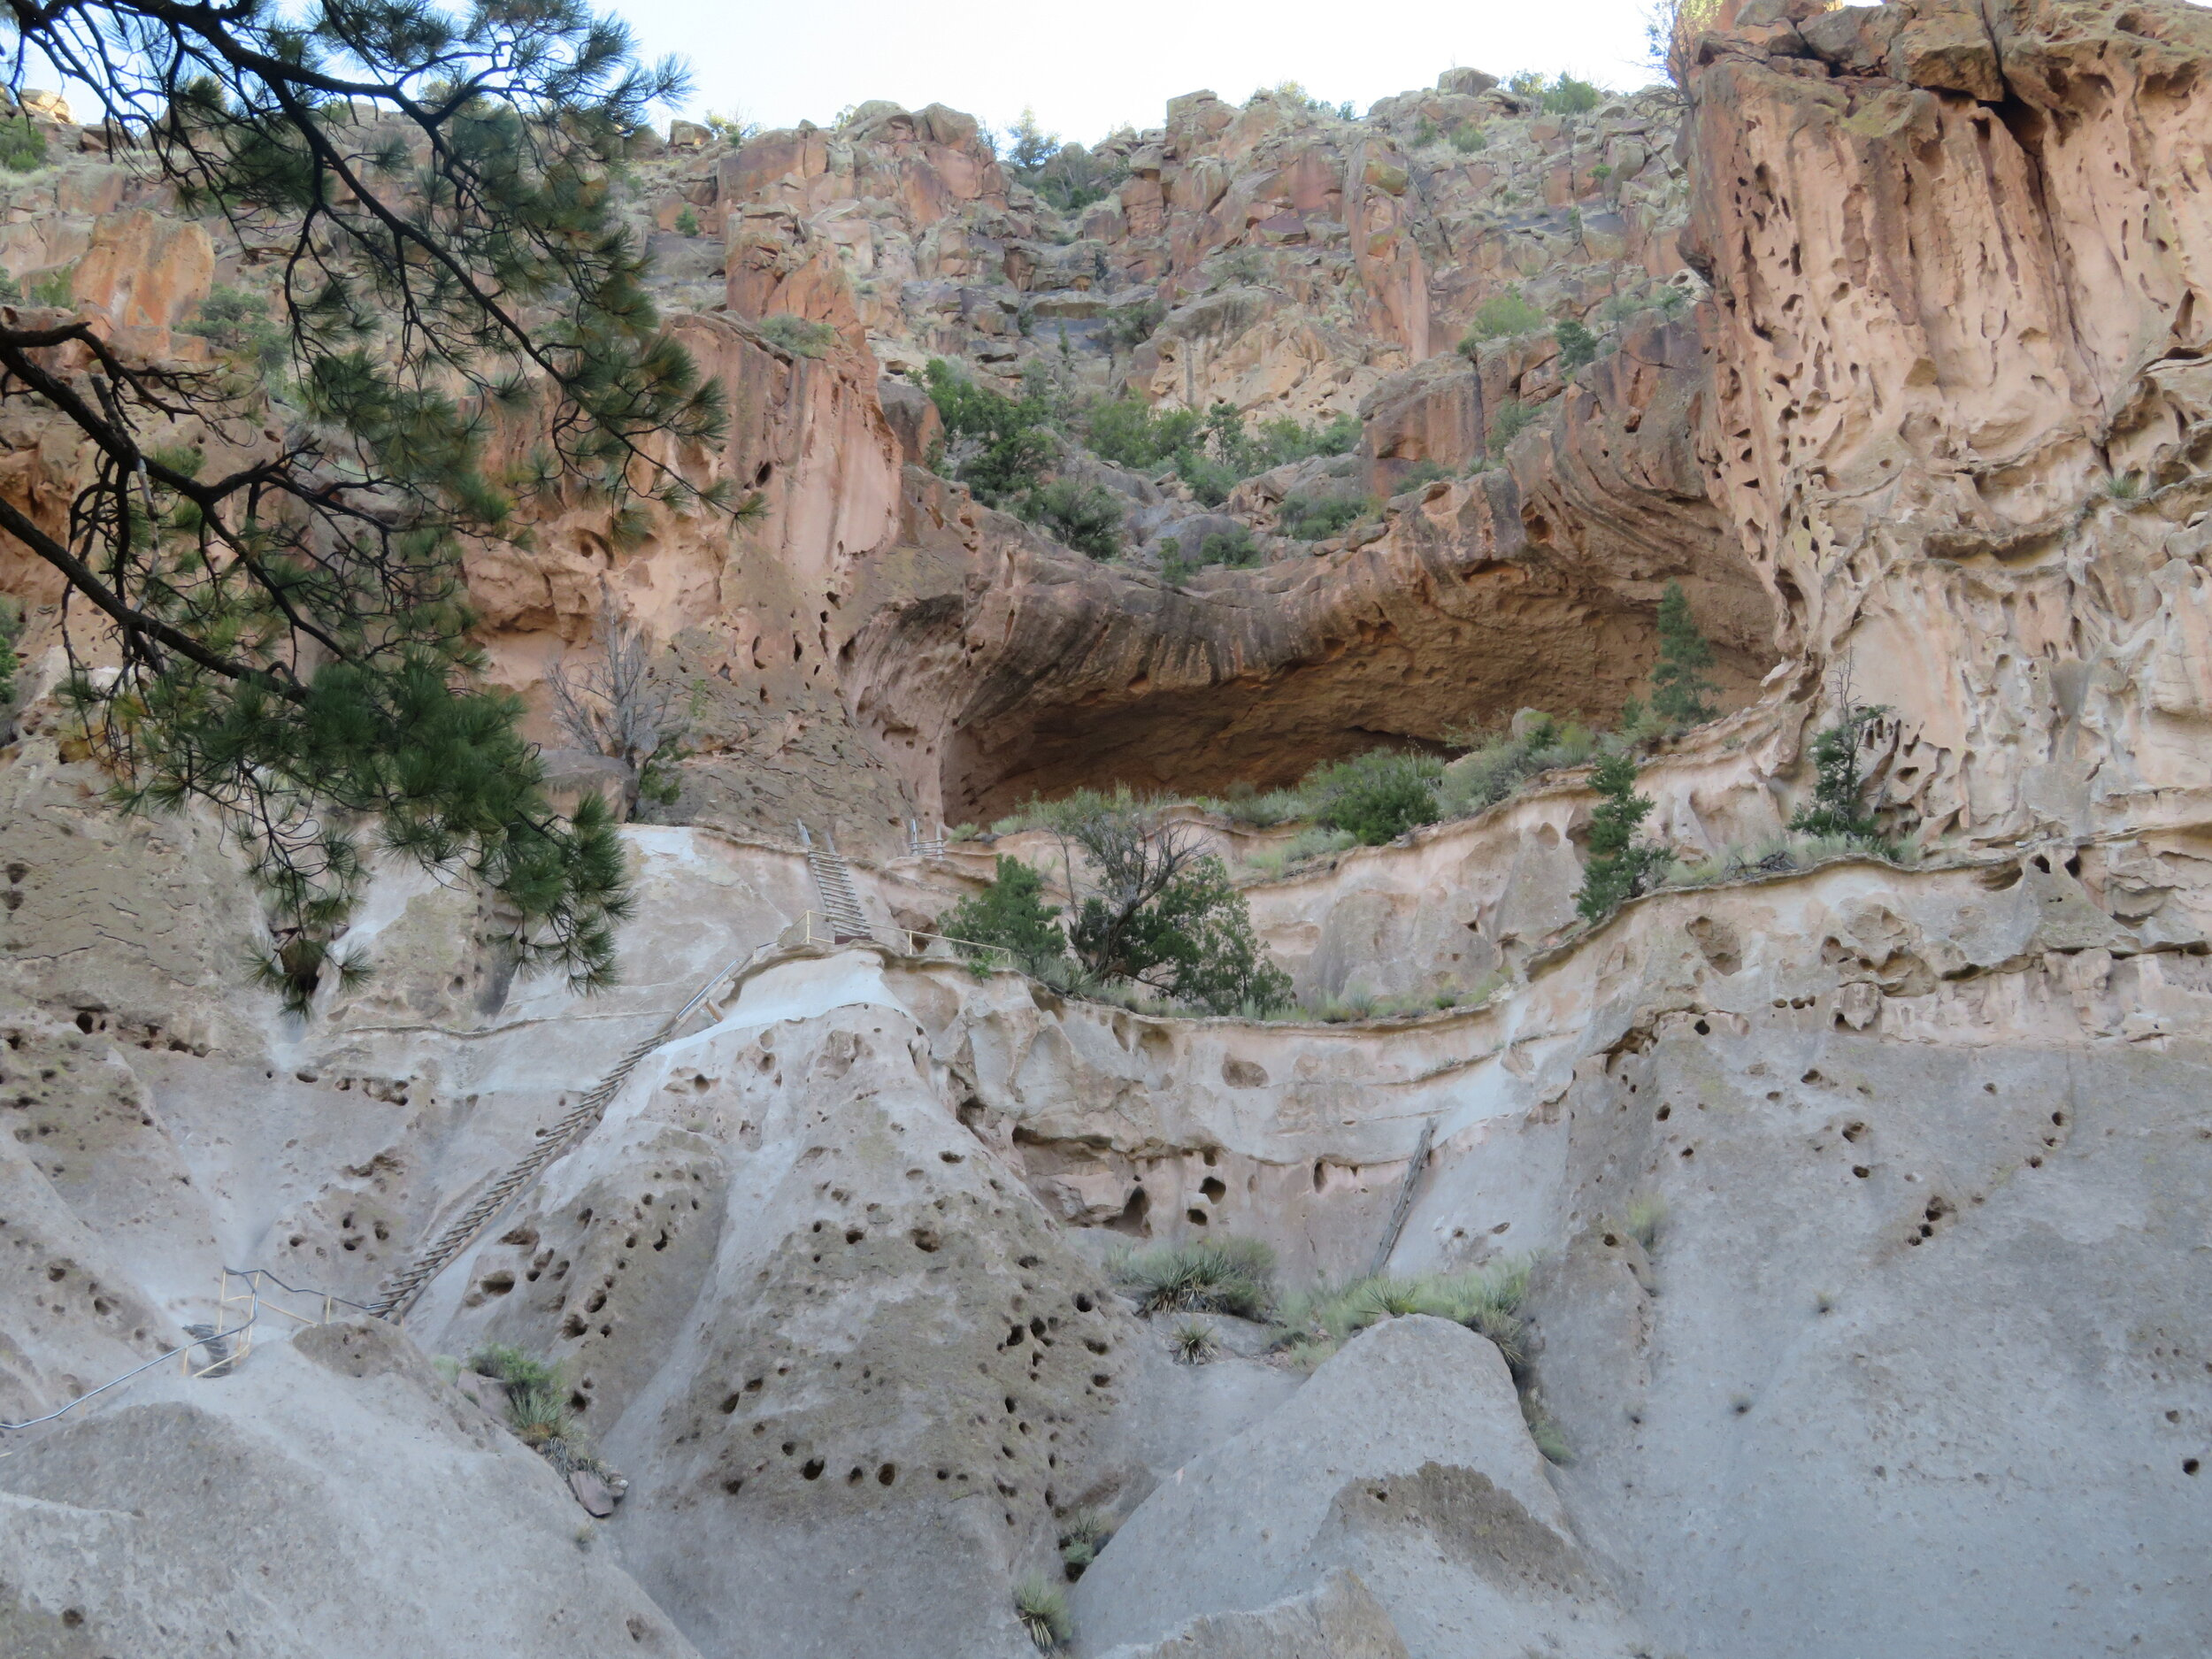 A view of the Alcove House ceremonial cave from below. It was just too crowded to visit today.